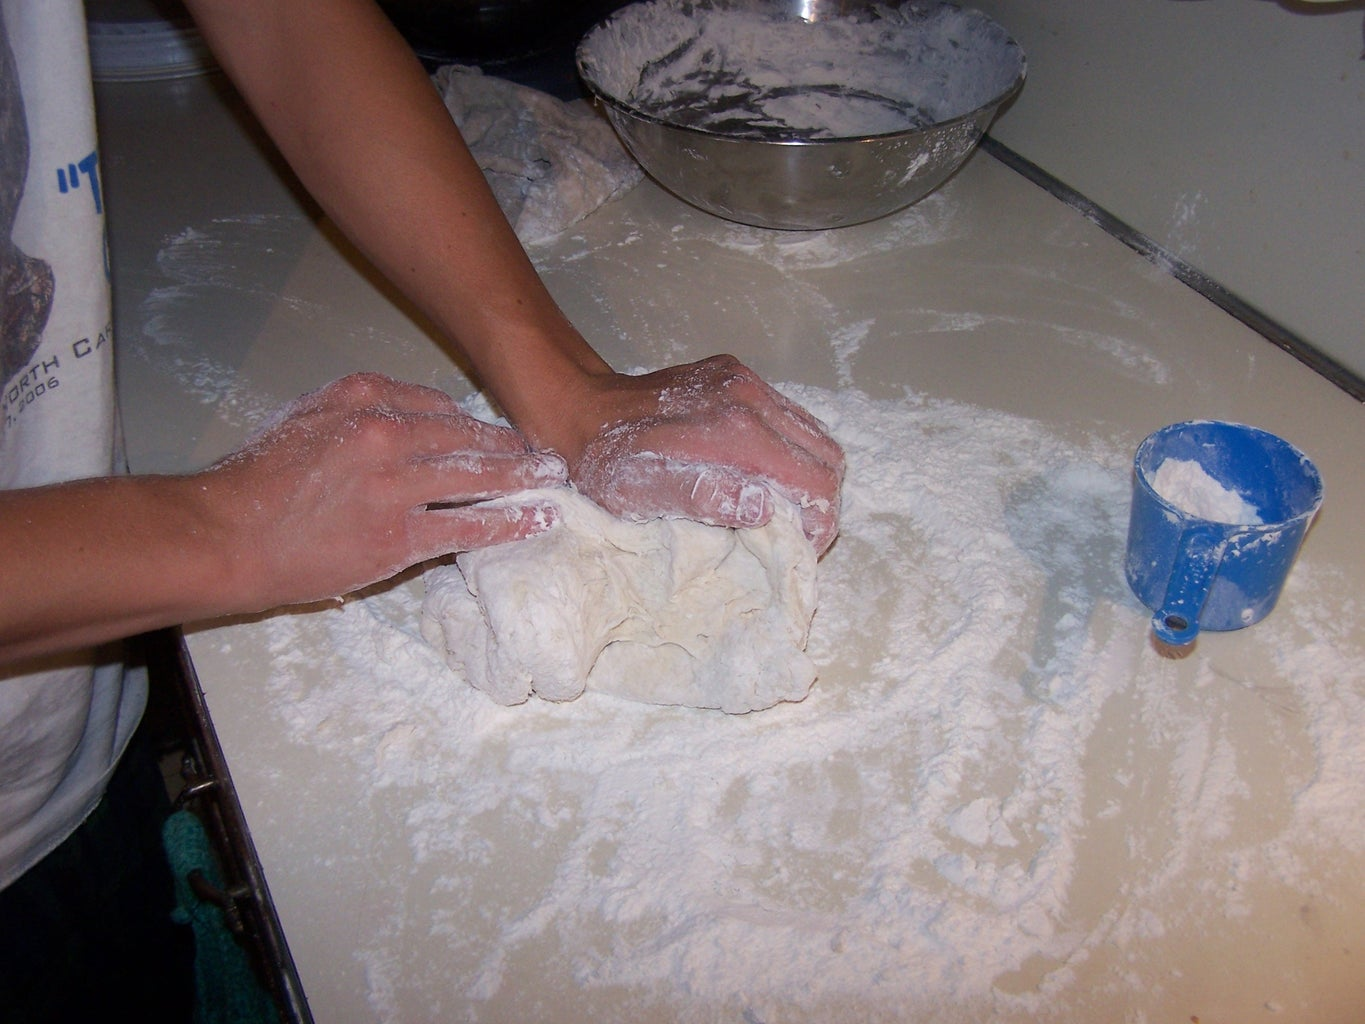 Add Some Flour and Knead It